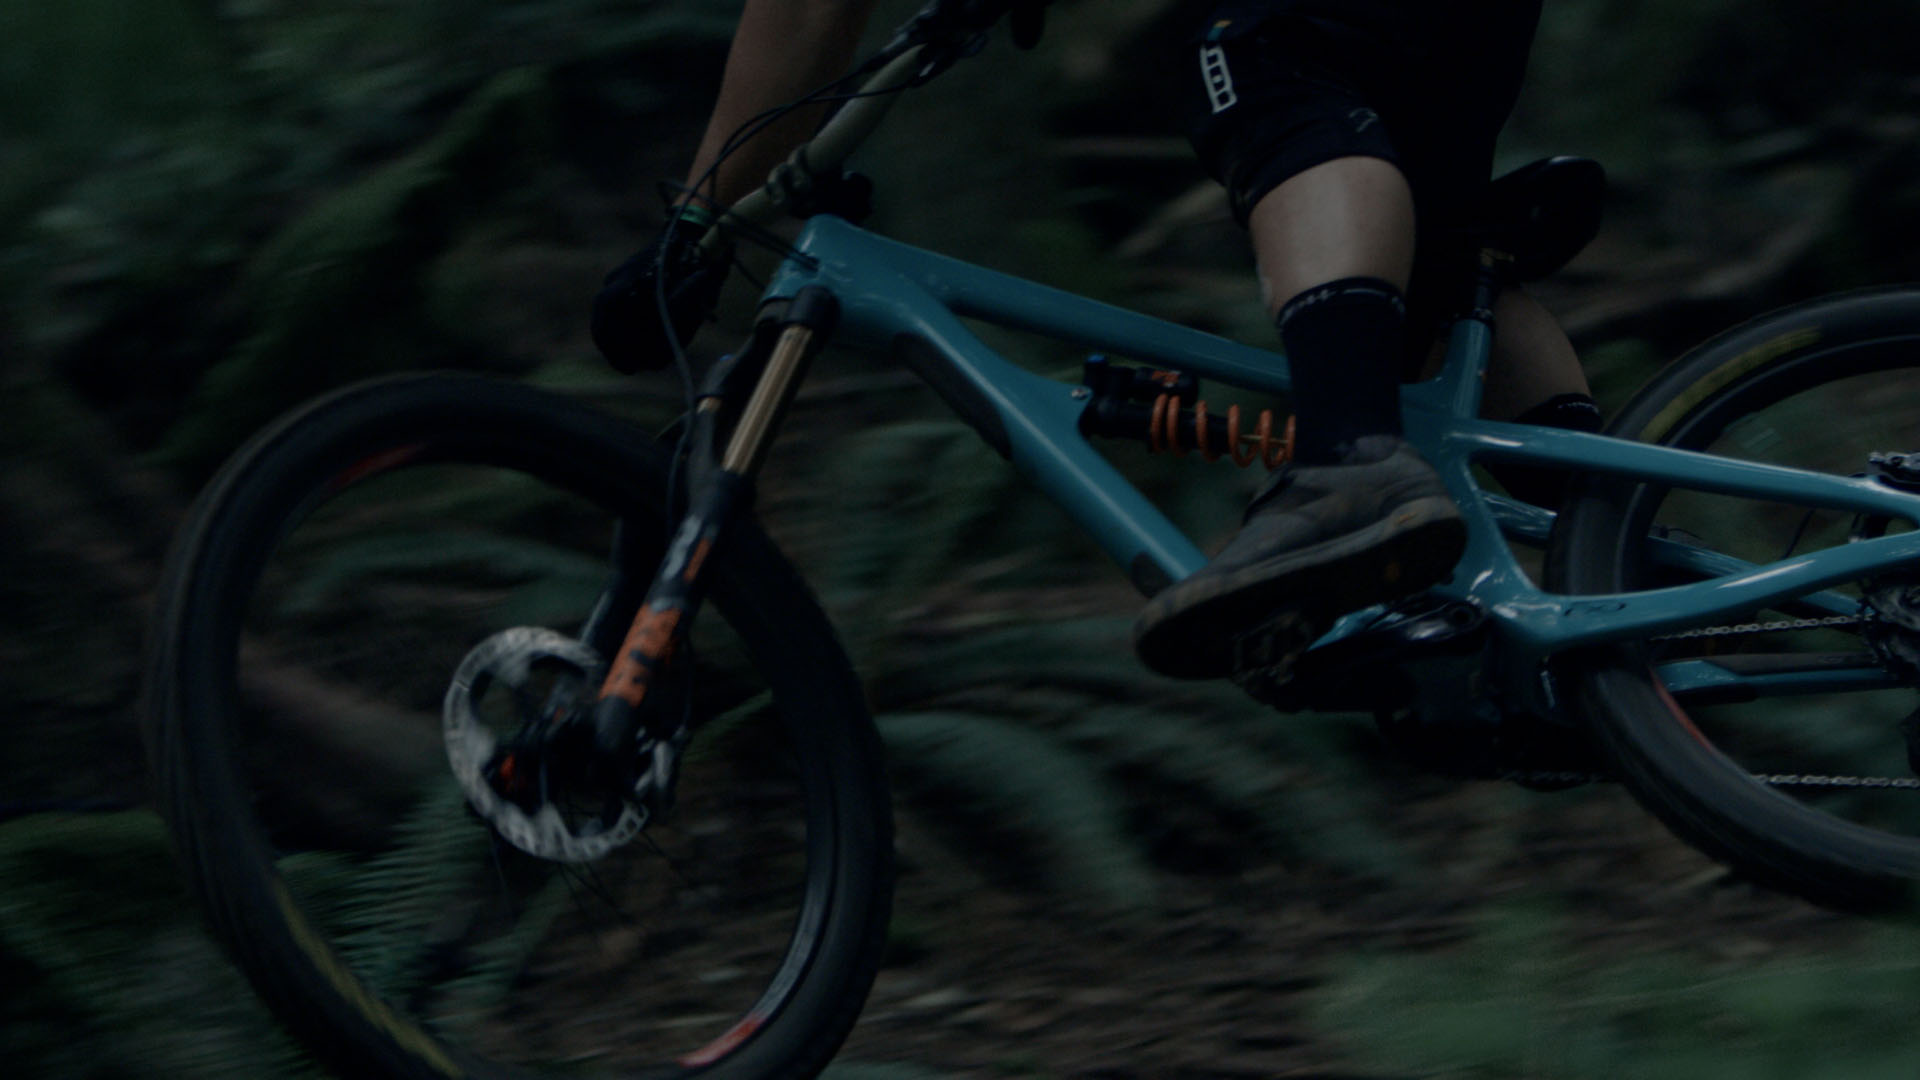 2019_YetiCycles_SB165_Frame_20